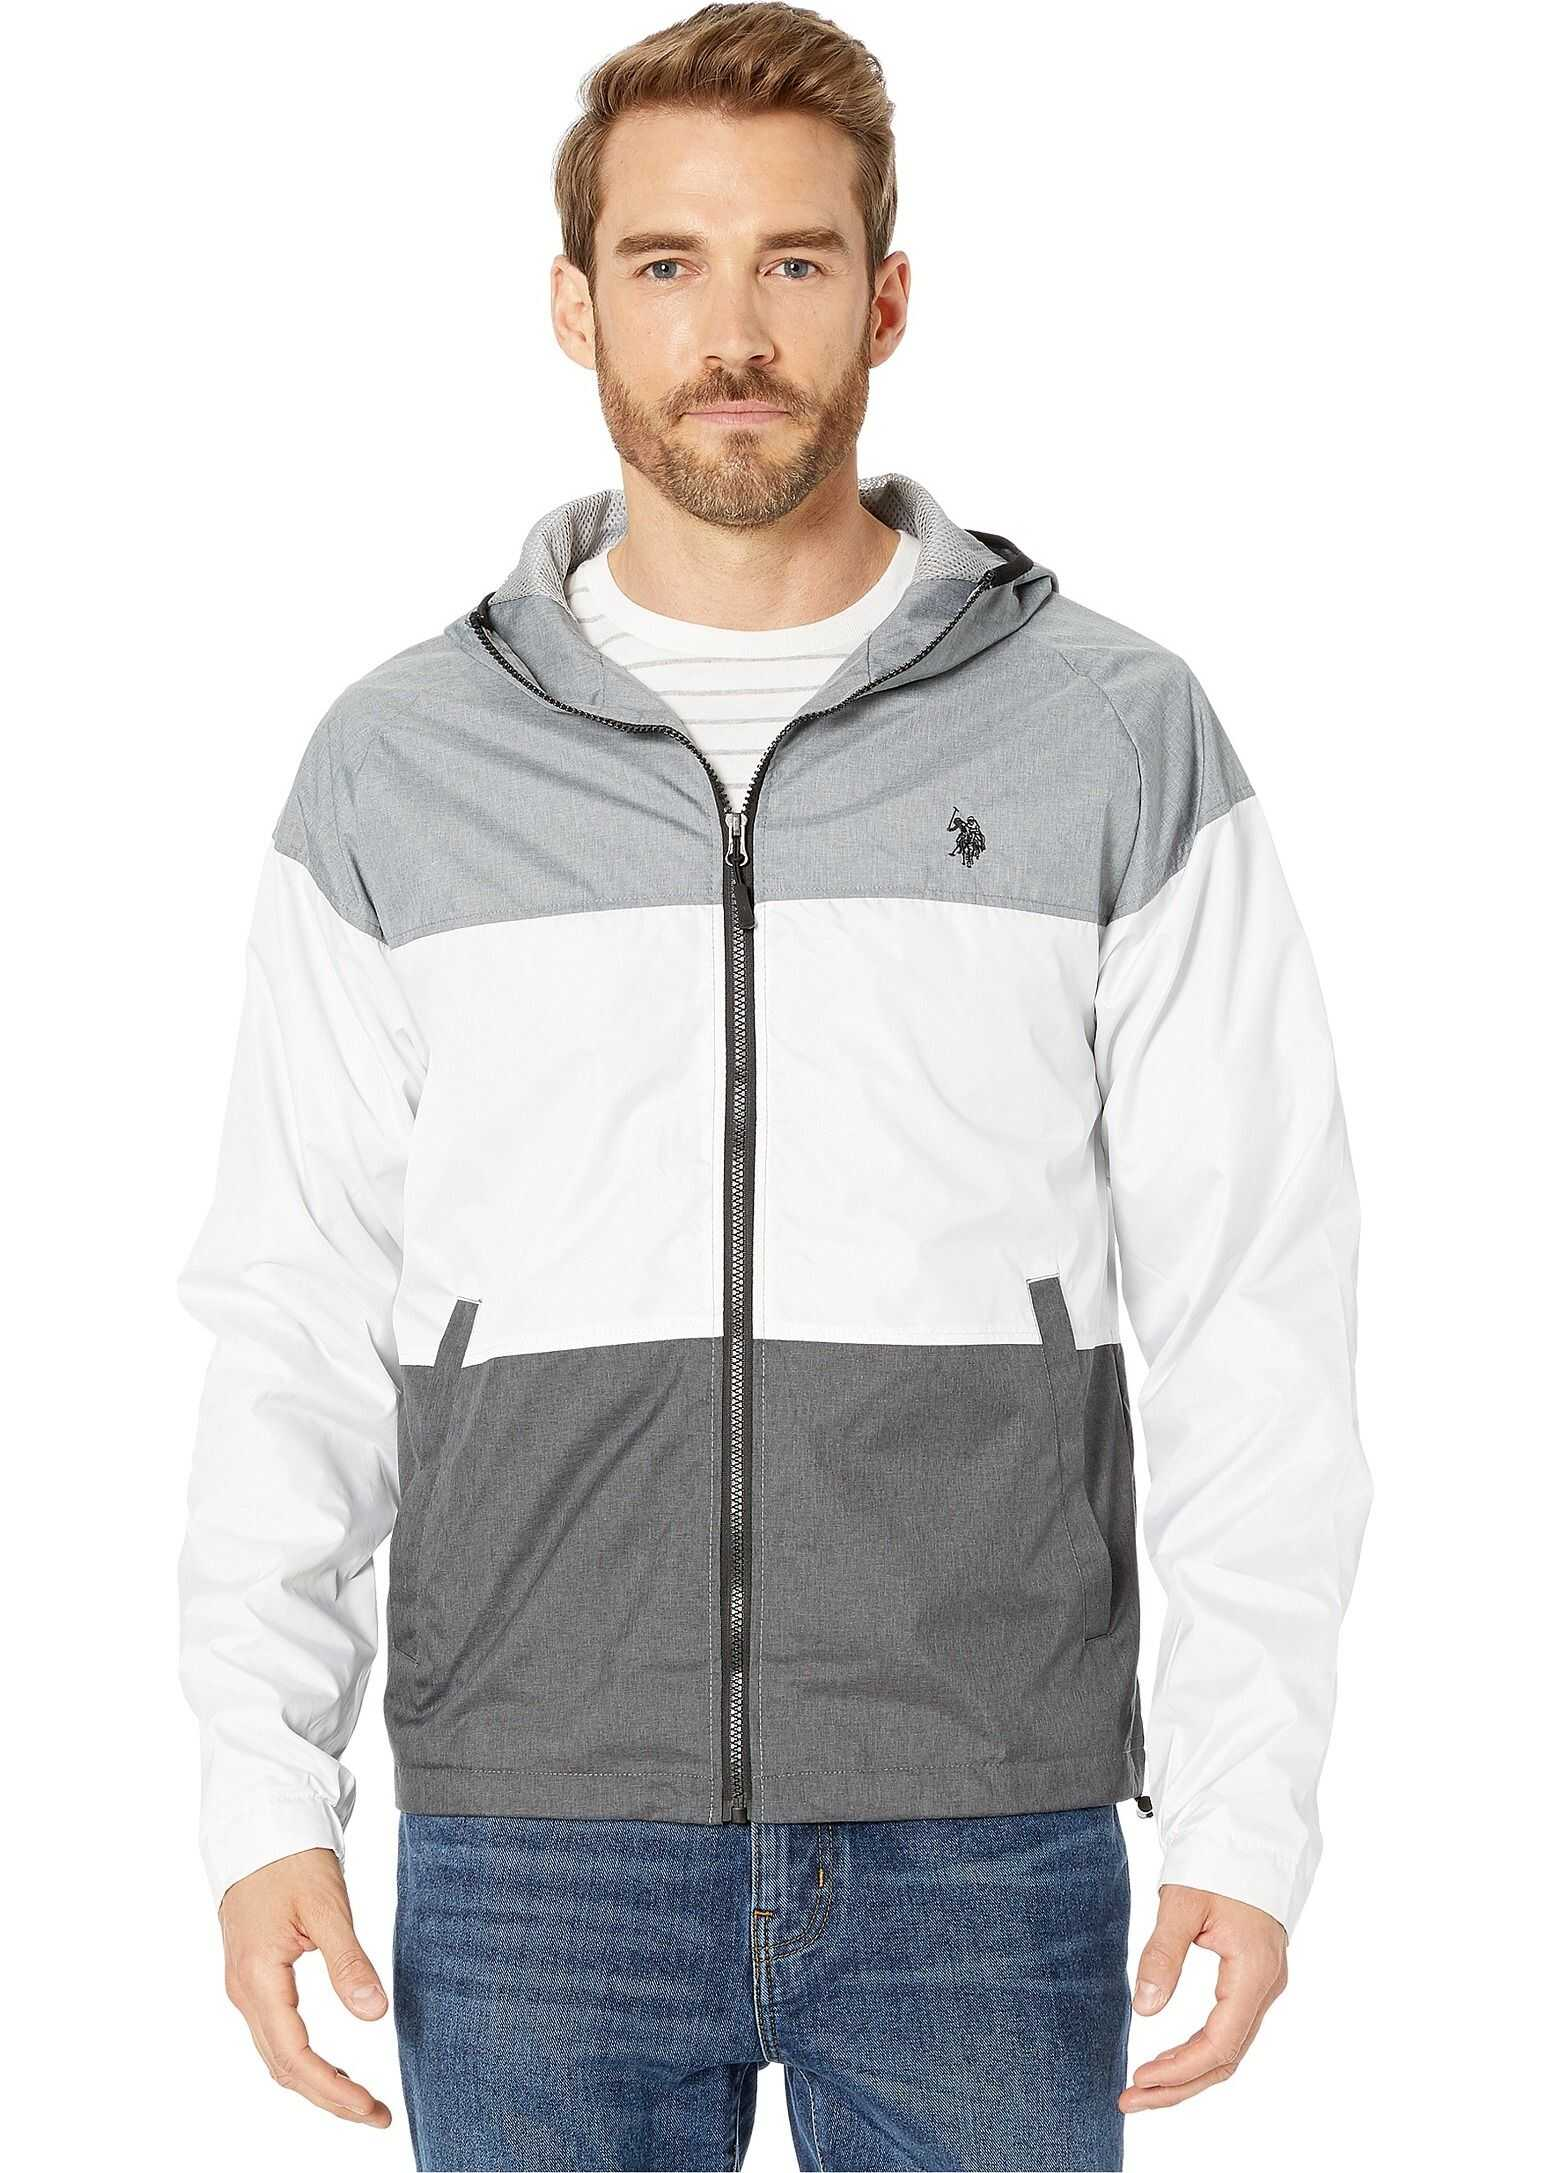 U.S. POLO ASSN. Tricolor Block Windbreaker Heather Gray